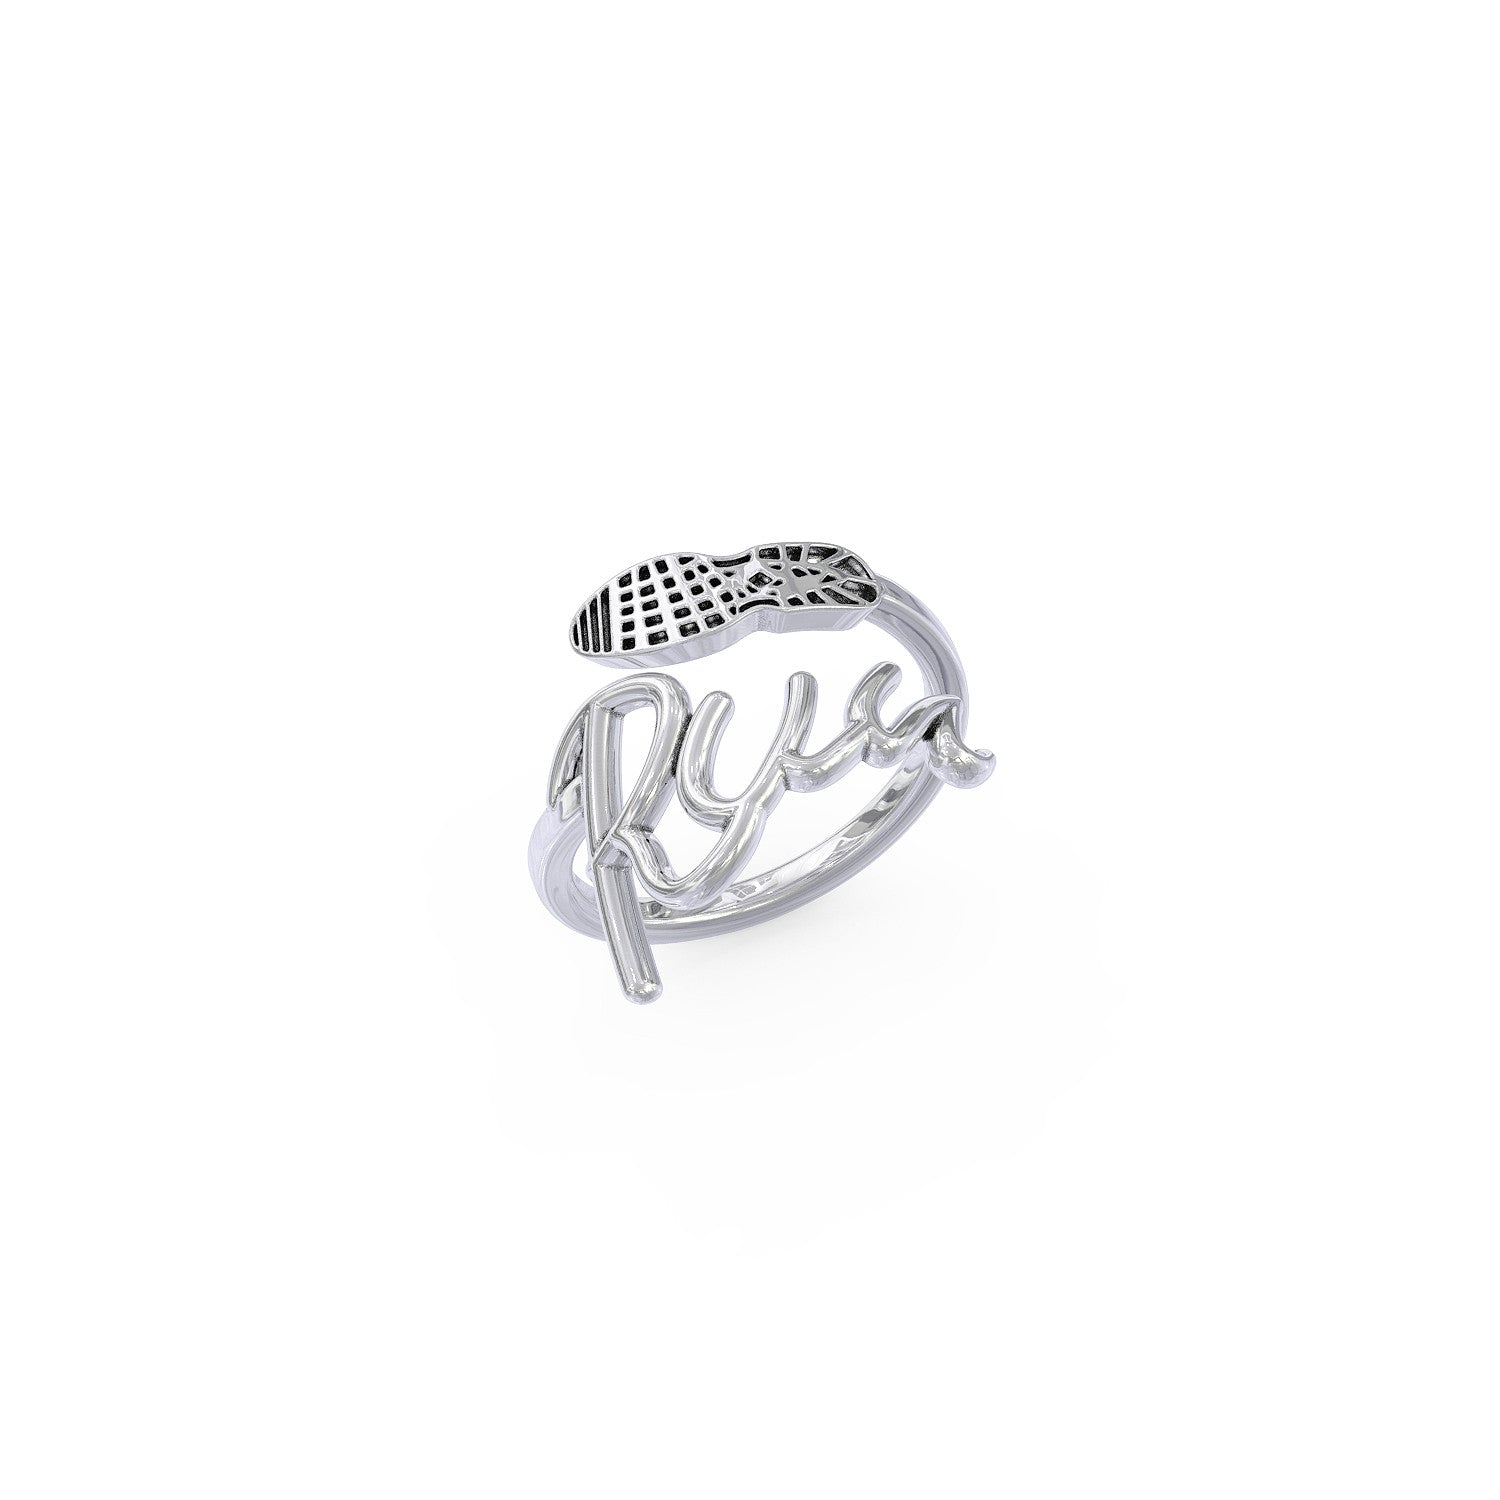 Runner Run Ring